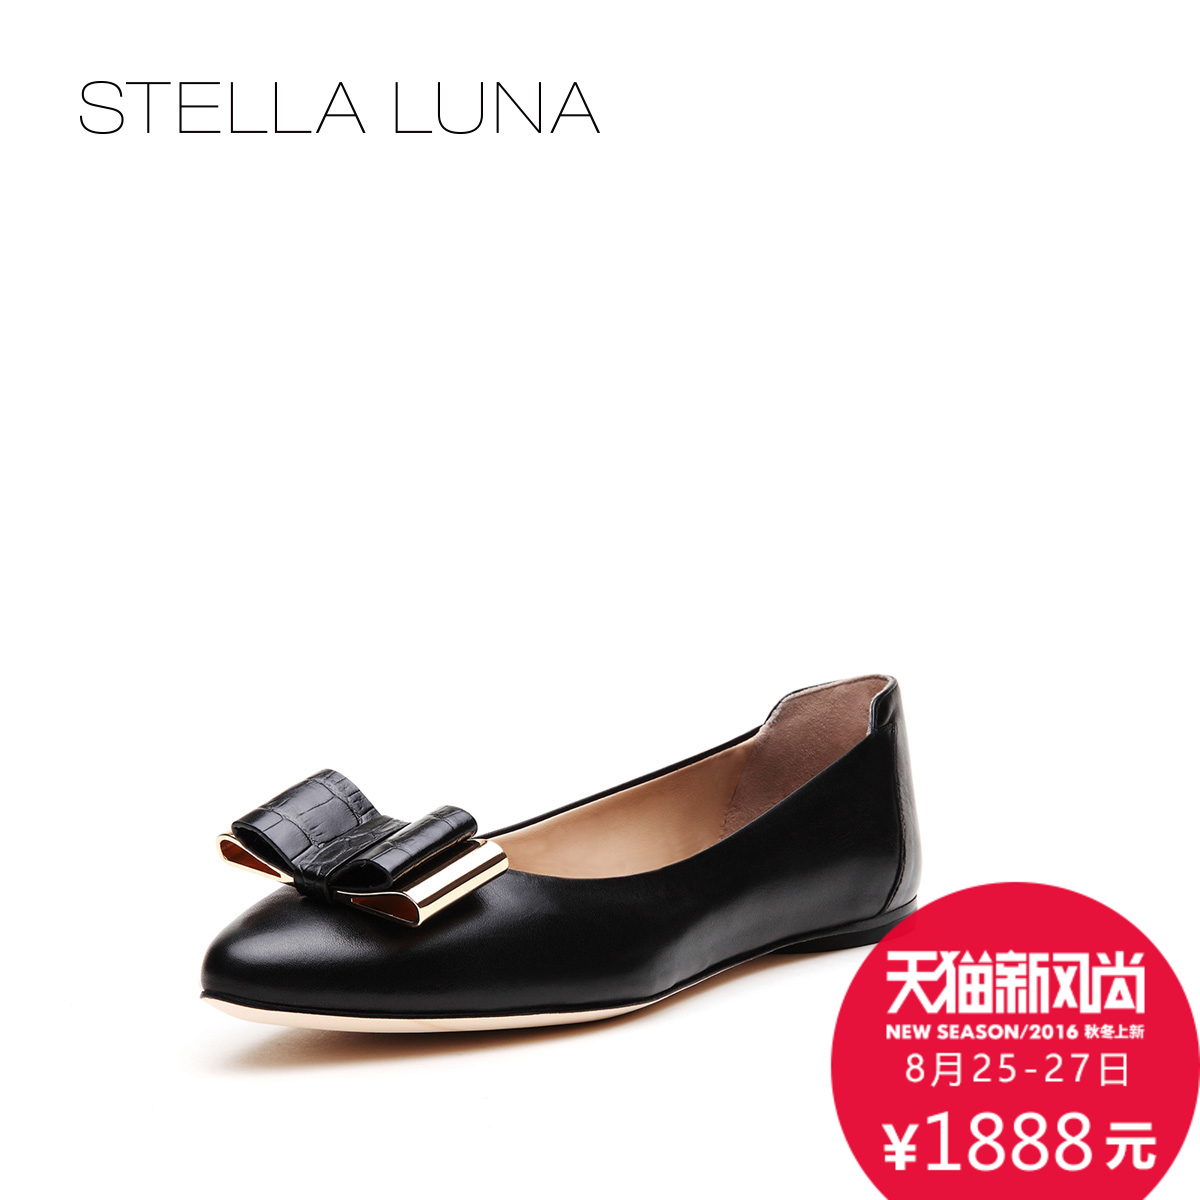 Ms. leather flat comfortable shoes shallow mouth spring and summer SG134L24390 LUNA2016 stella